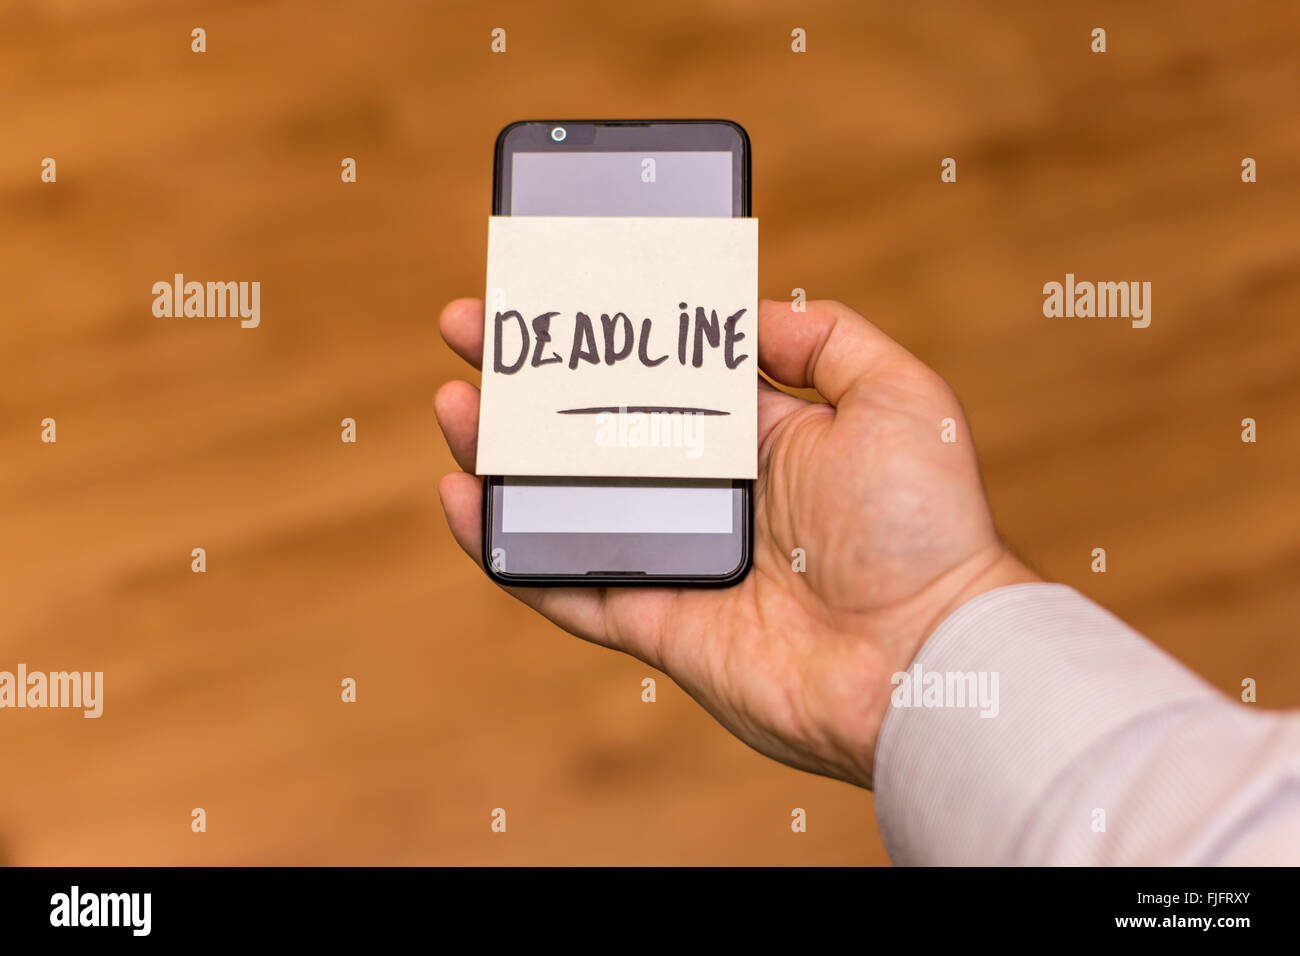 Human hand holding a smartphone with yellow note sticked on it. The word deadliner is written on the note. Stock Photo